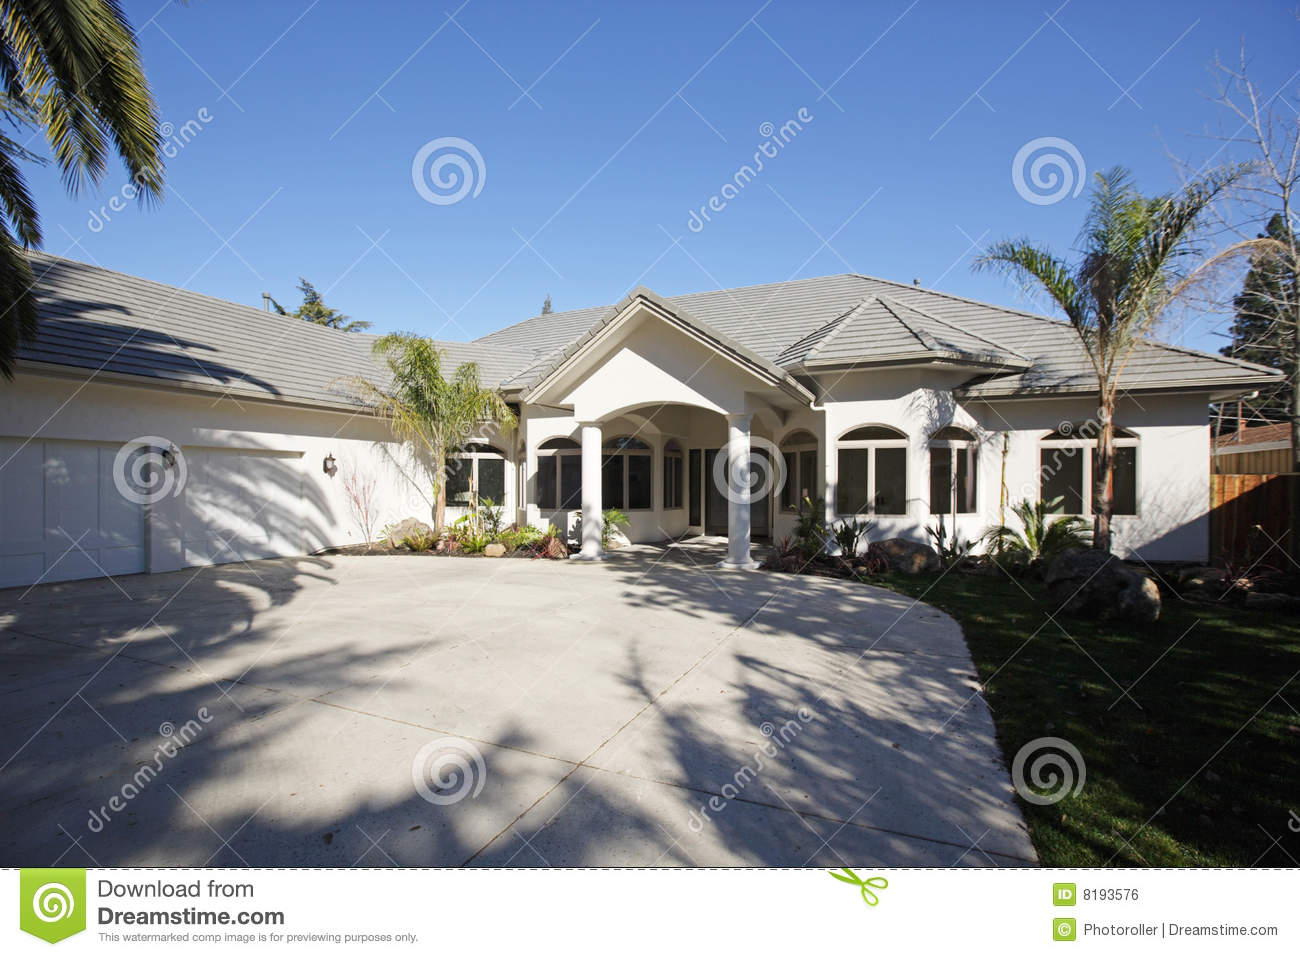 Luxury home royalty free stock image image 8193576 for Free luxury home images